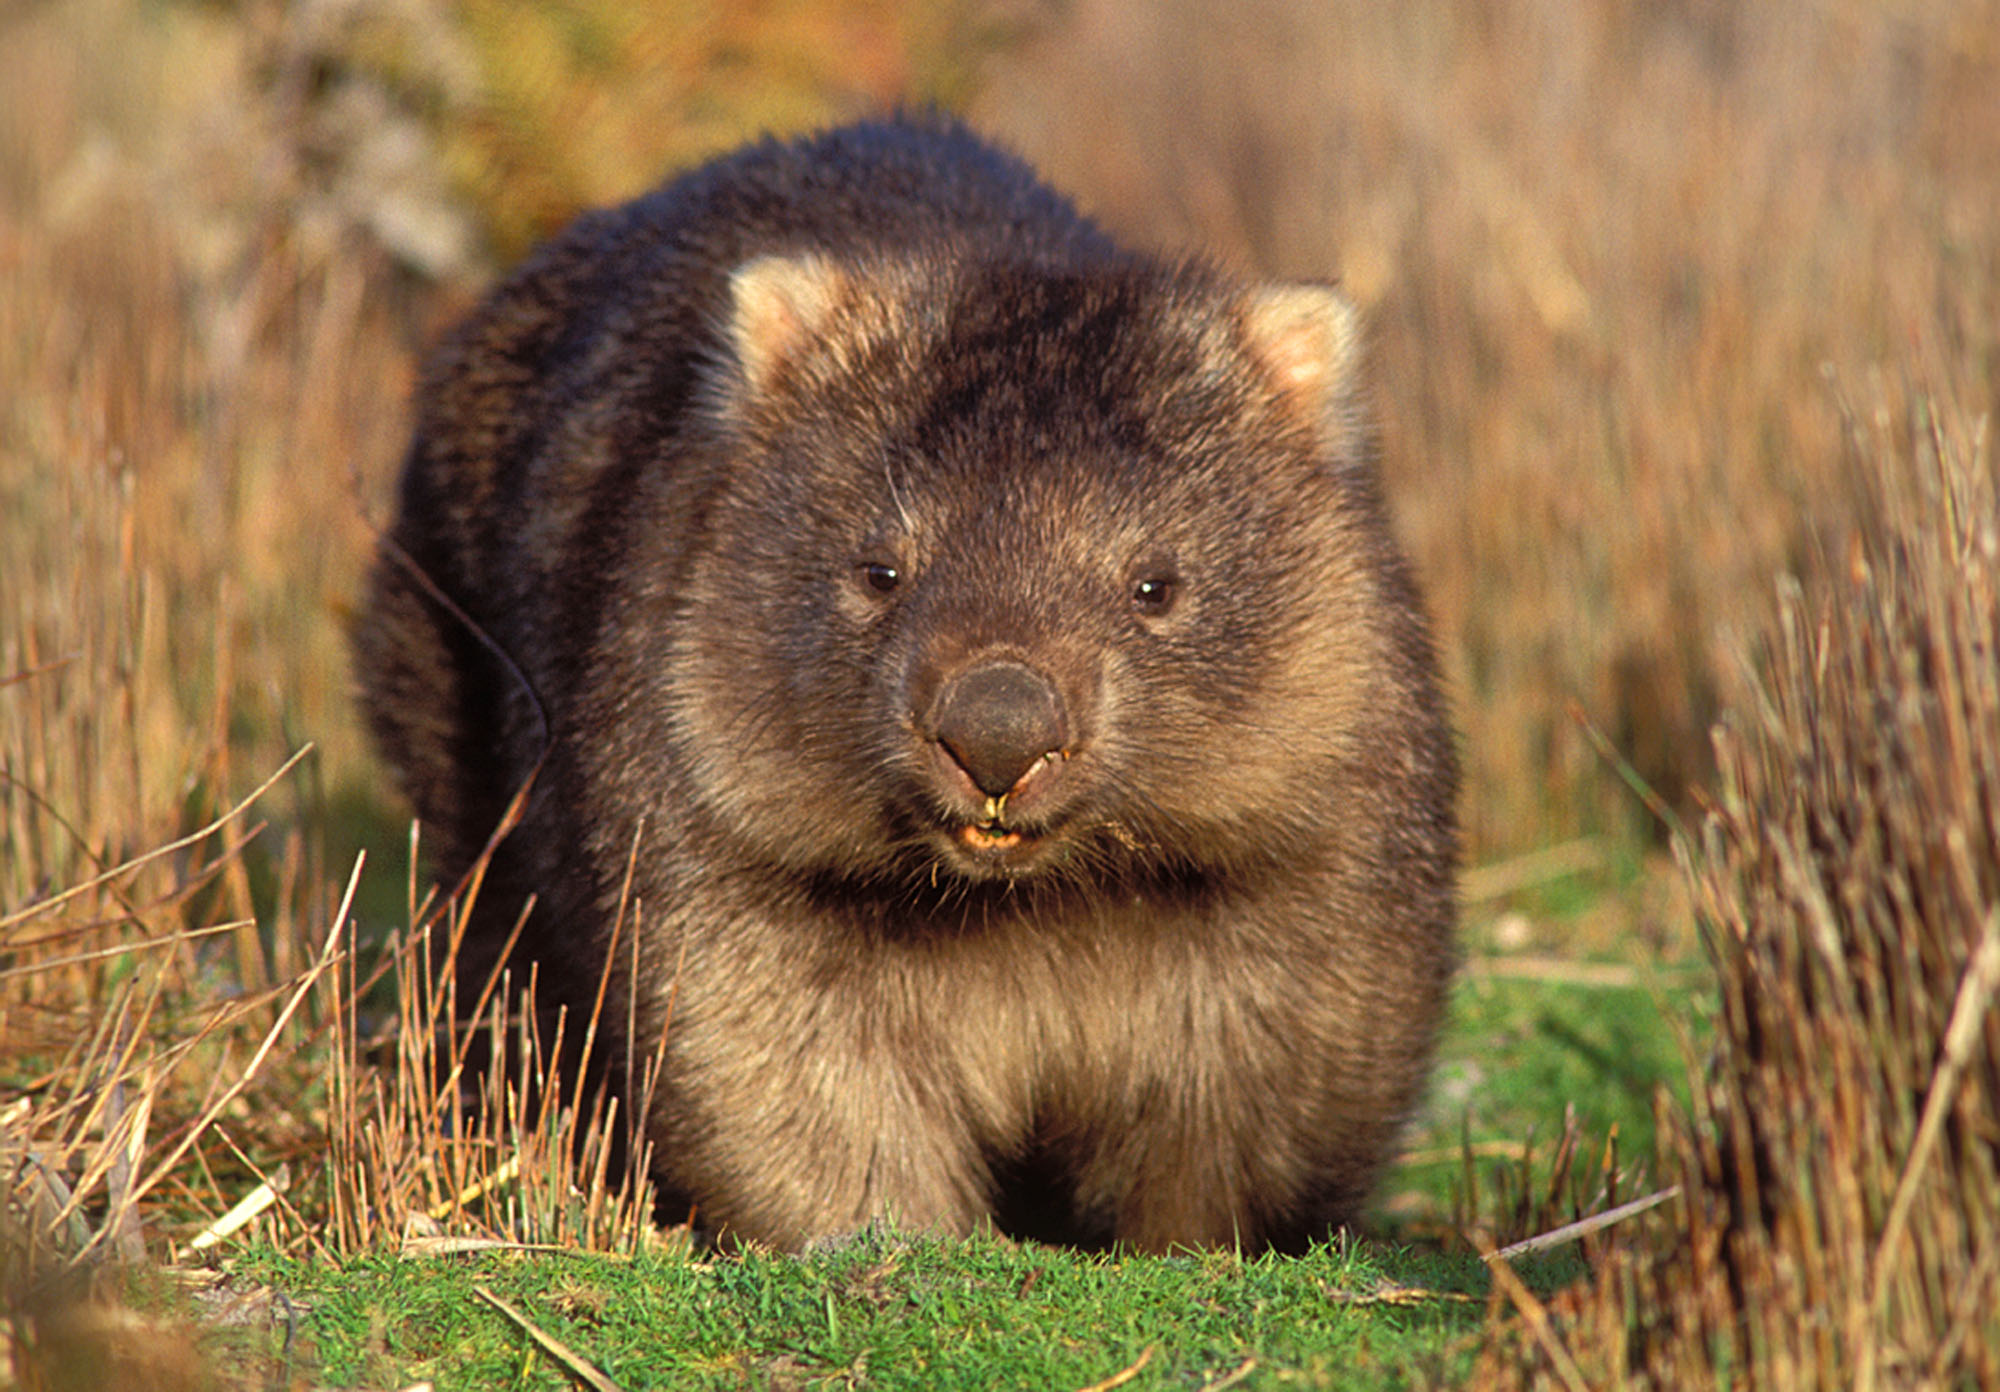 Best 40+ Wombat Backgrounds on HipWallpapers